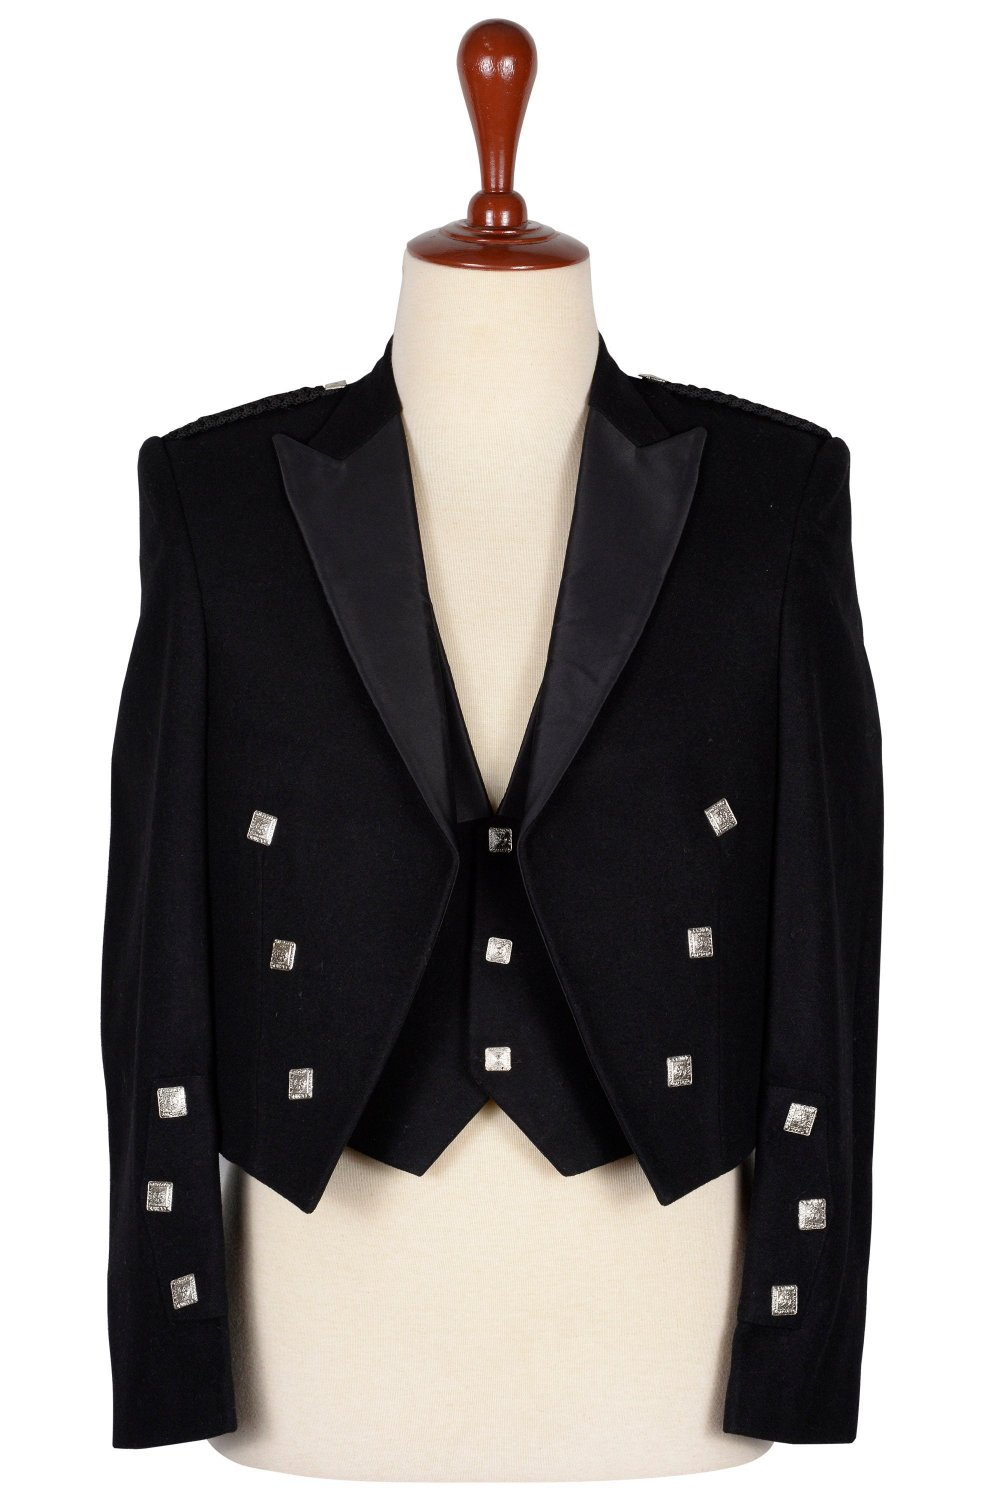 54 inches chest Made to Measure - Premium Quality Hand Made Prince Charlie Jacket and Waistcoat